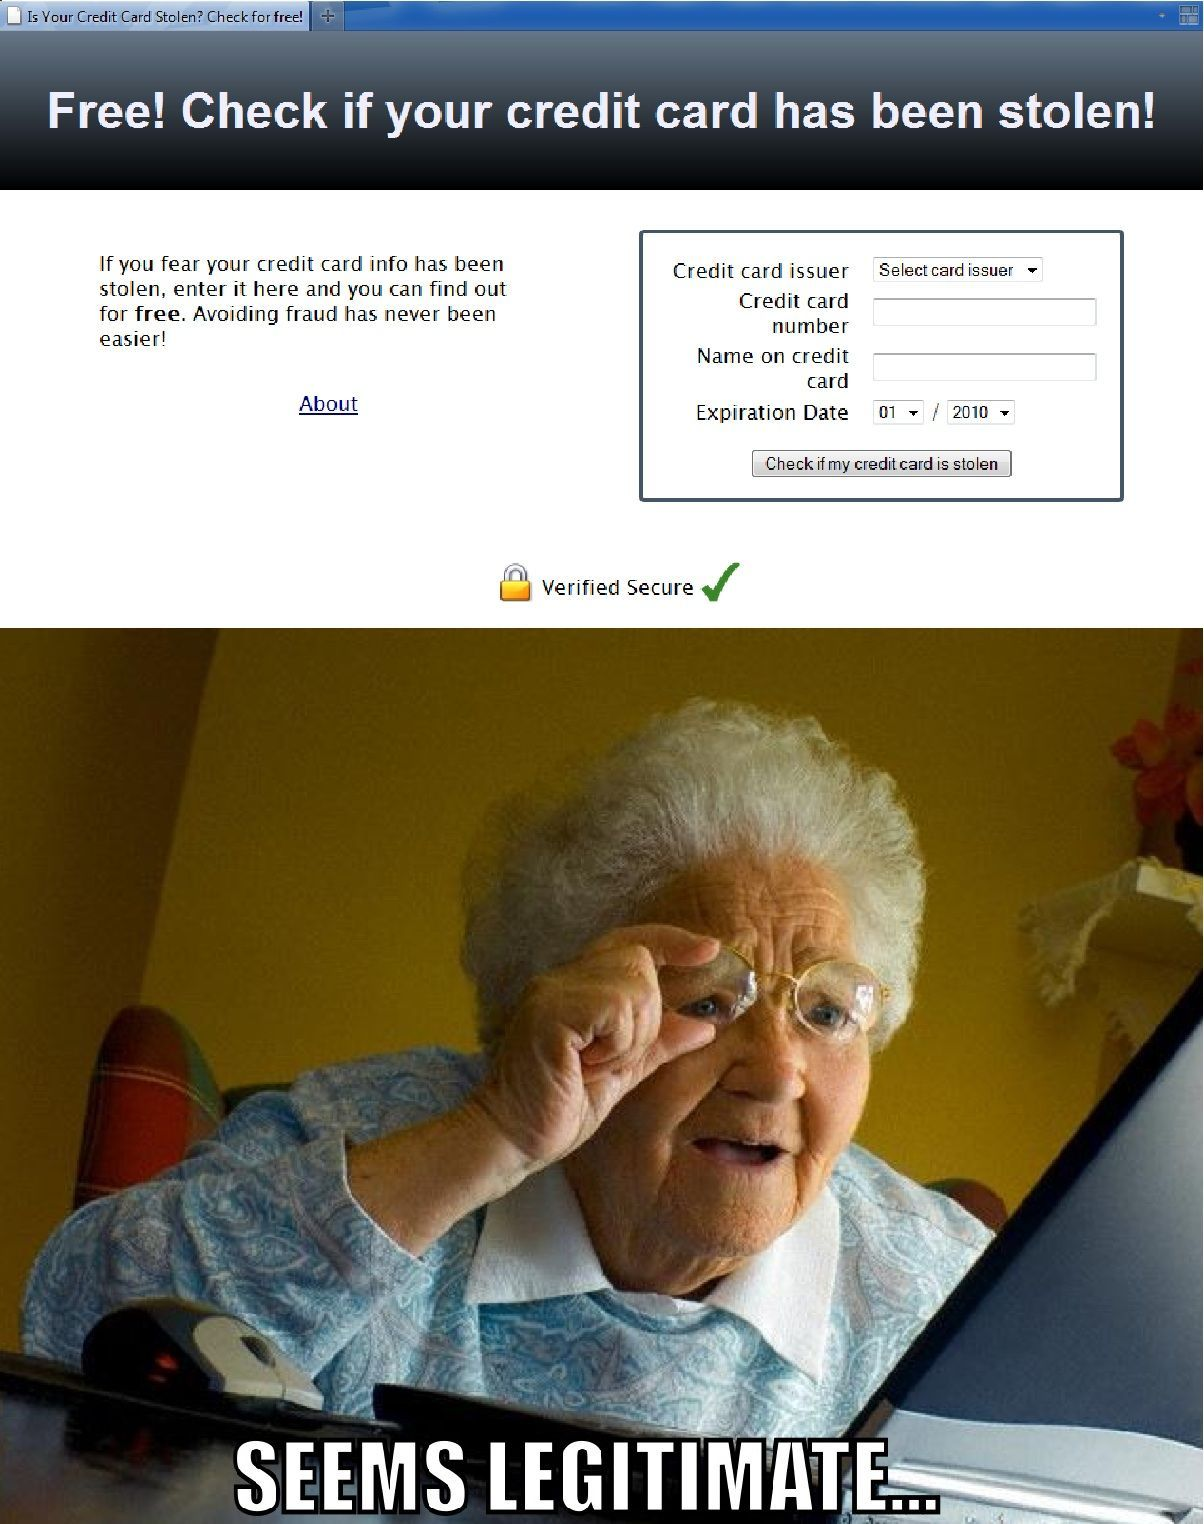 0416401b5b776a9c3b13826b05a55cfb grandma finds that her credit card *has* been stolen bbb